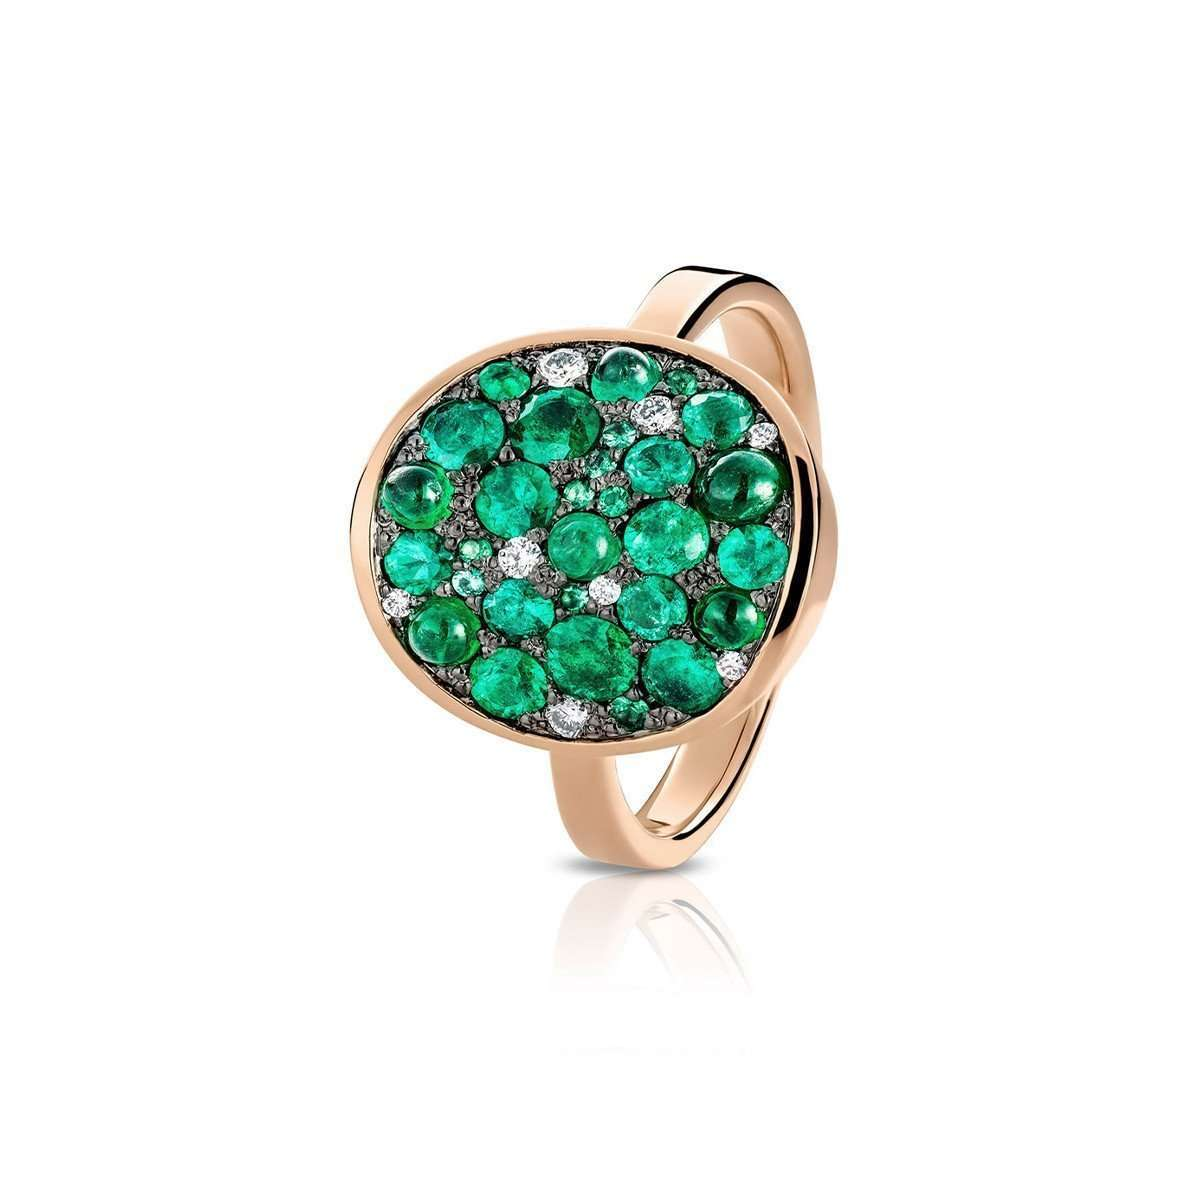 Starstruck Ring Set With Emeralds And Diamonds